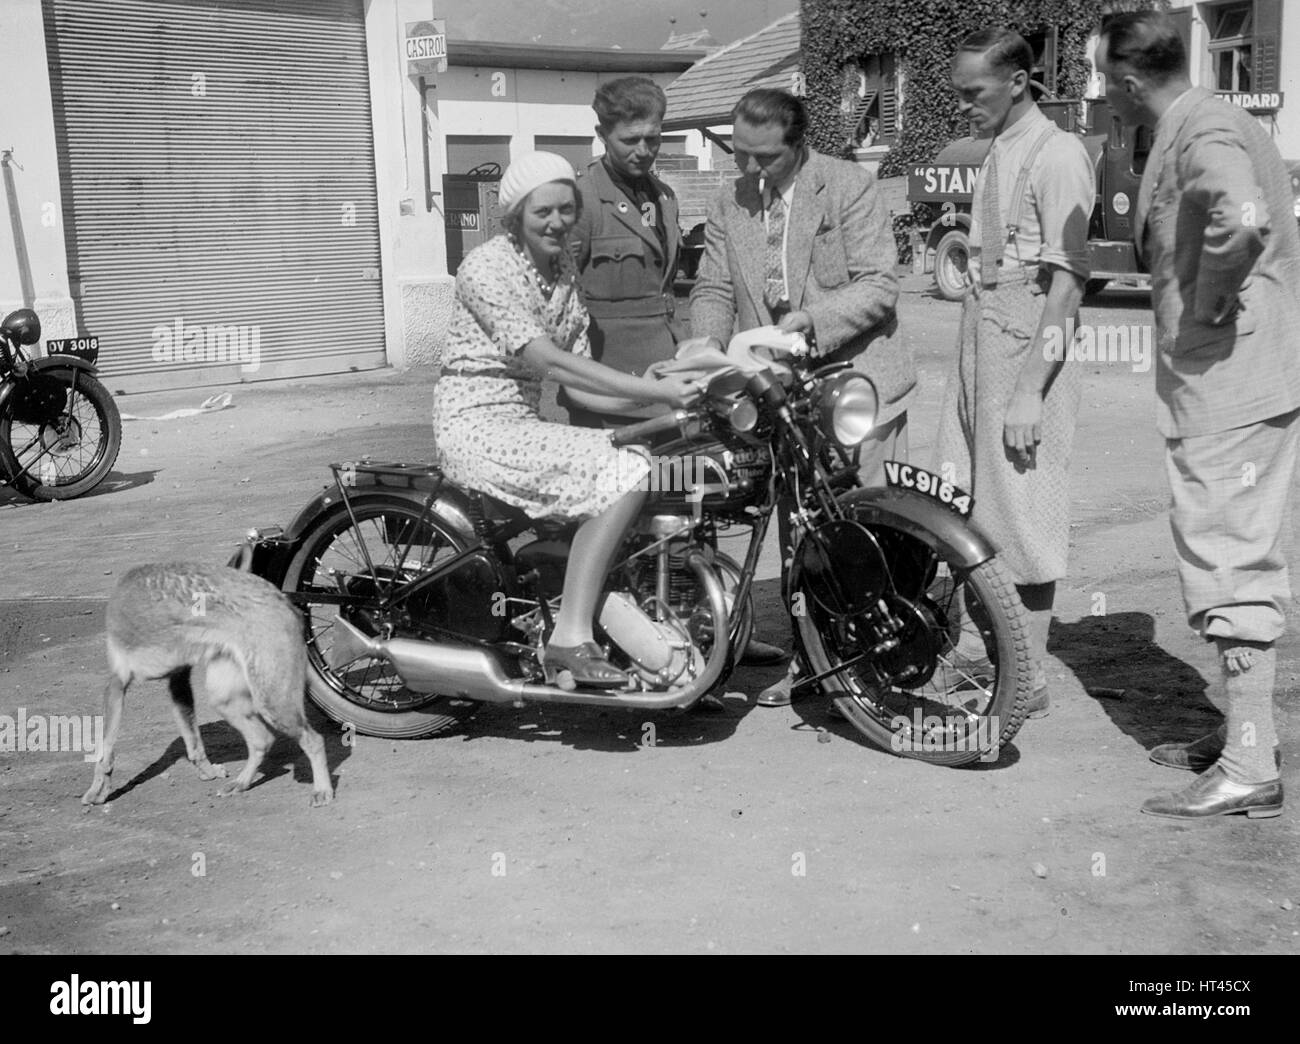 Betty Lemitte on a 499 cc Rudge Ulster motorcycle, 1930s. Artist: Bill Brunell. - Stock Image